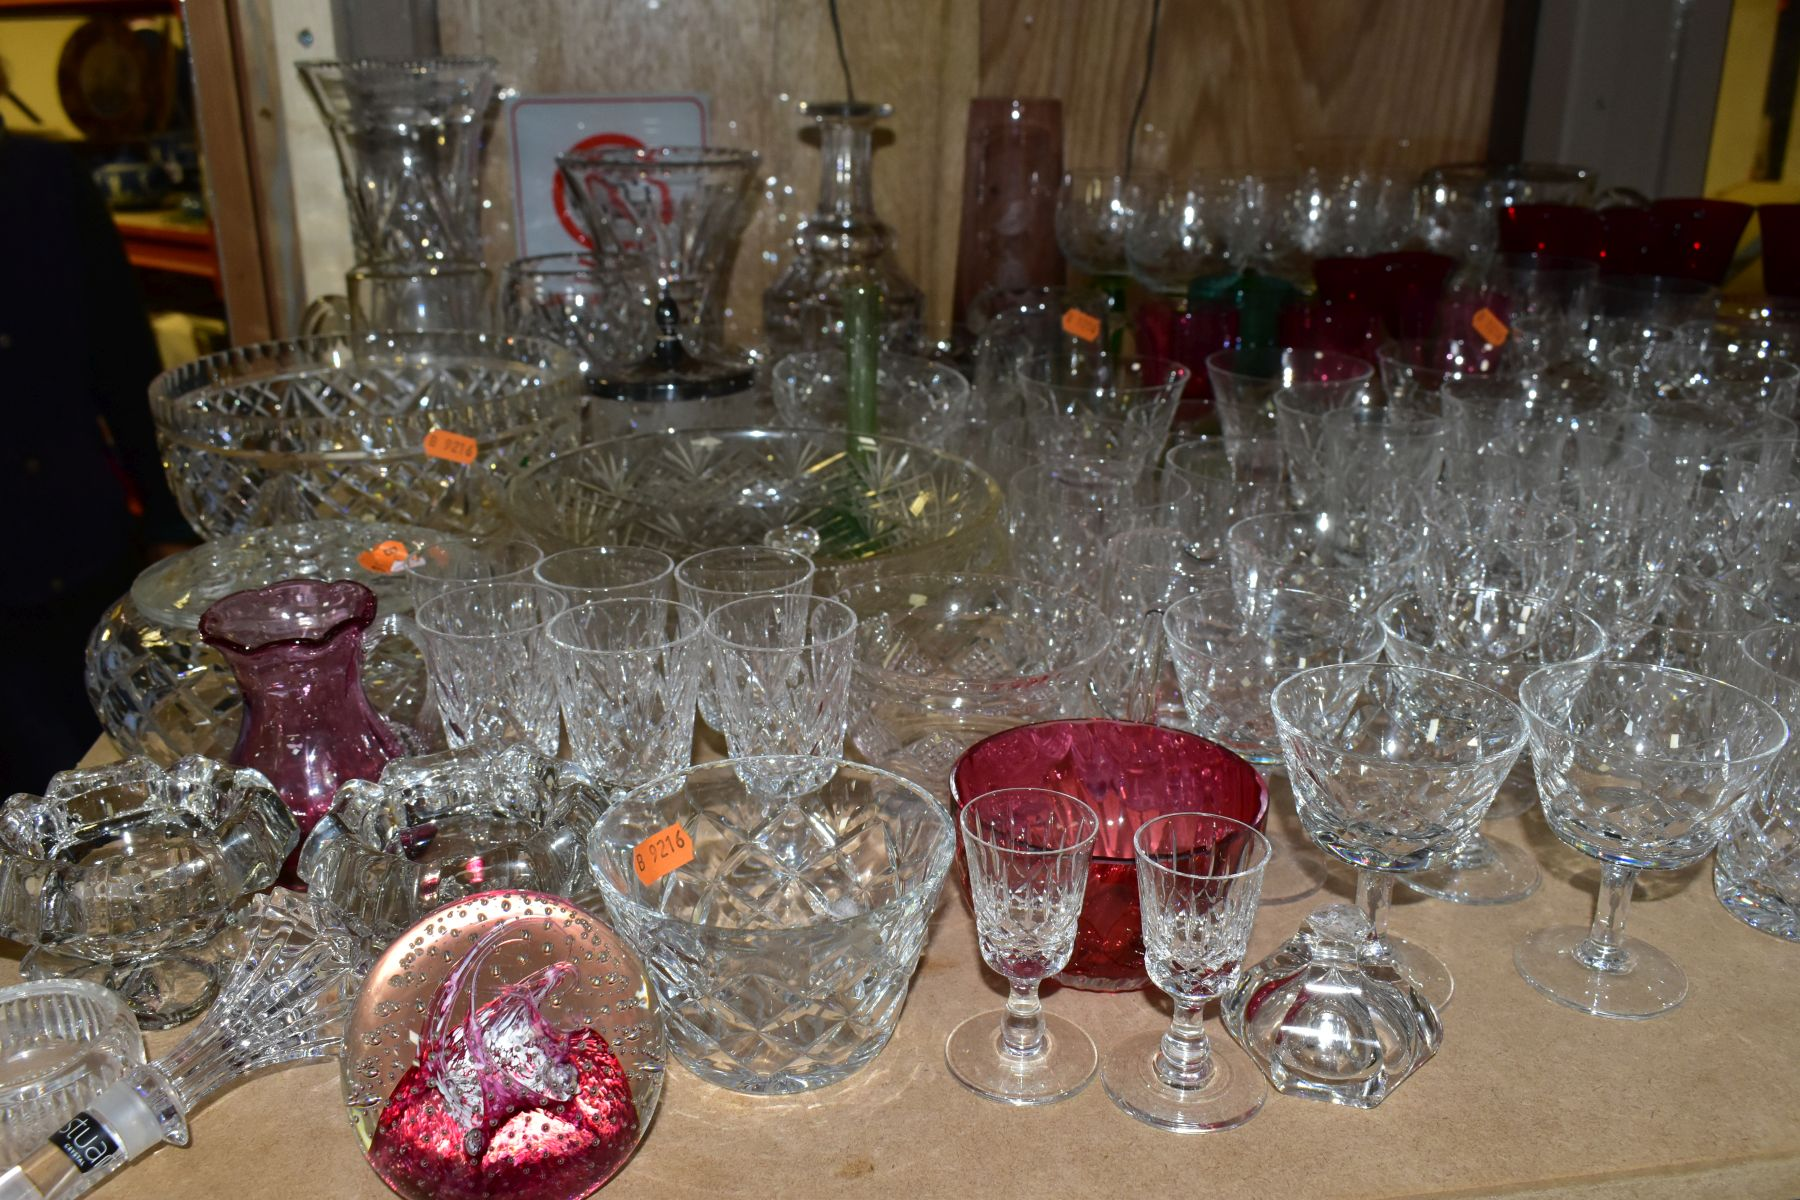 A QUANTITY OF GLASSWARE, including a Waterford Crystal quartz mantel clock, height 11cm, coloured - Image 2 of 9